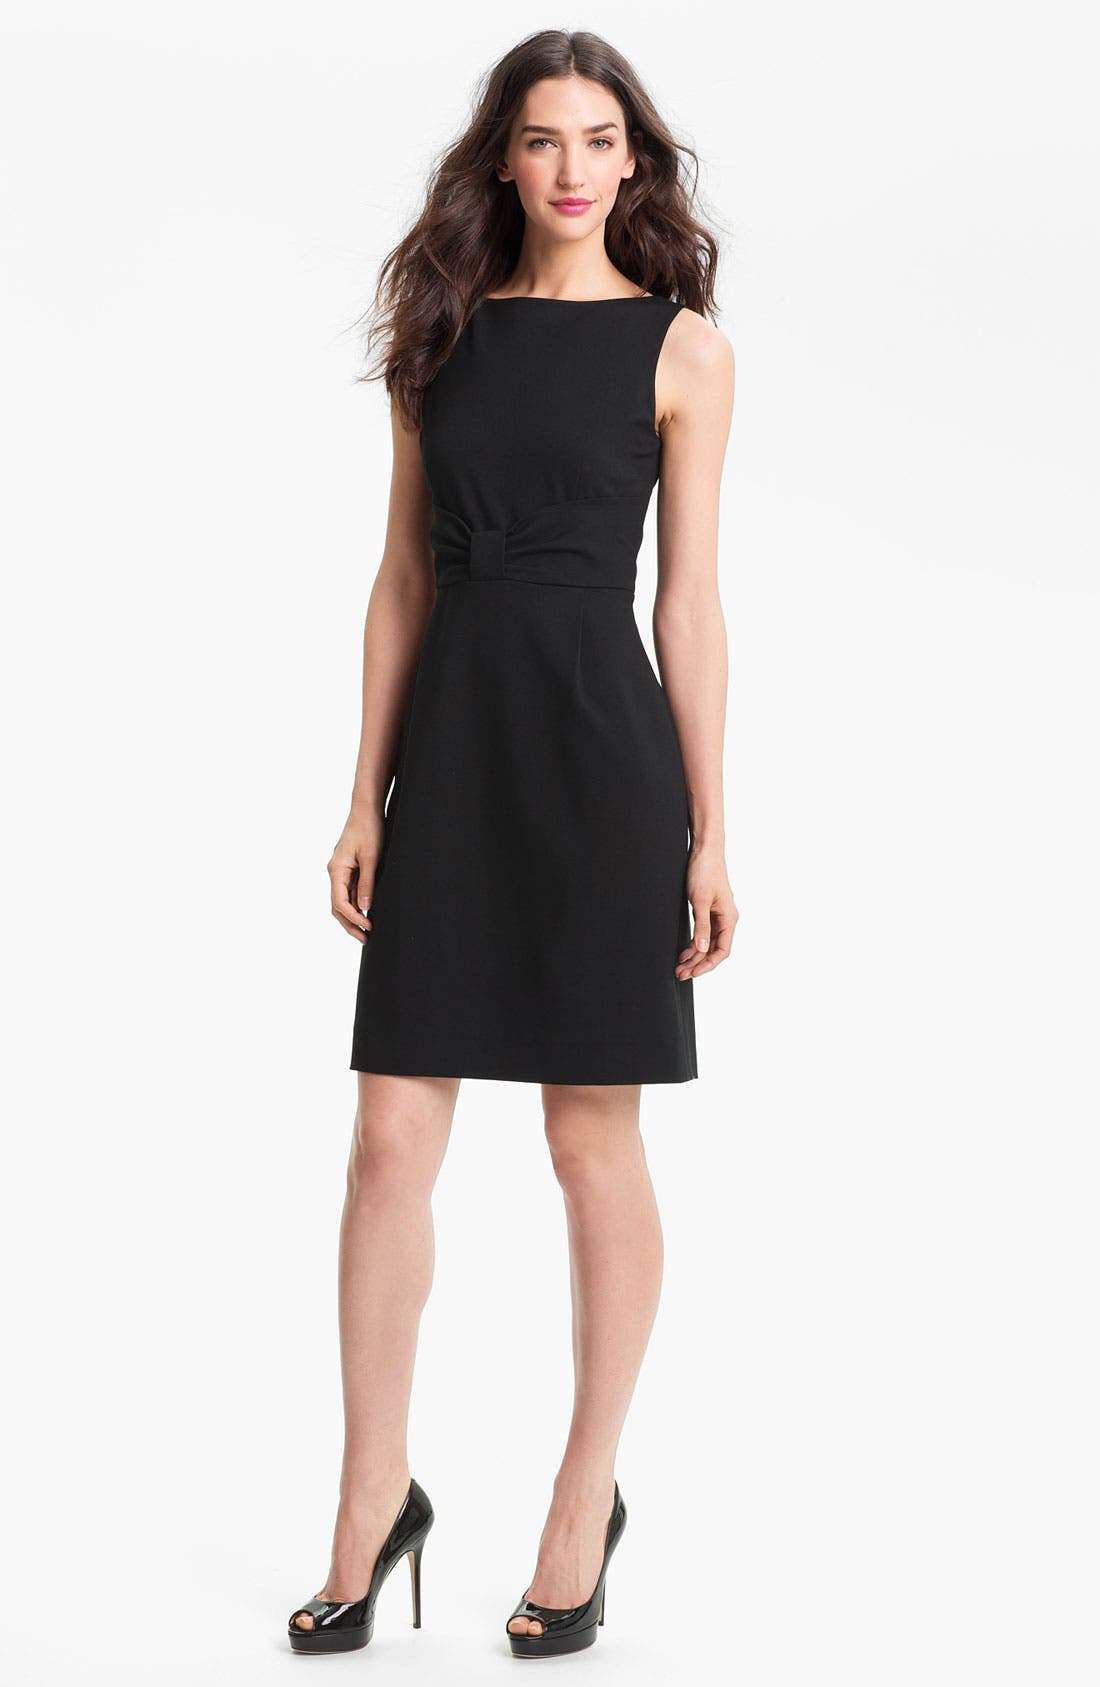 Alternate Image 1 Selected - kate spade new york 'evie' sheath dress (Nordstrom Exclusive)